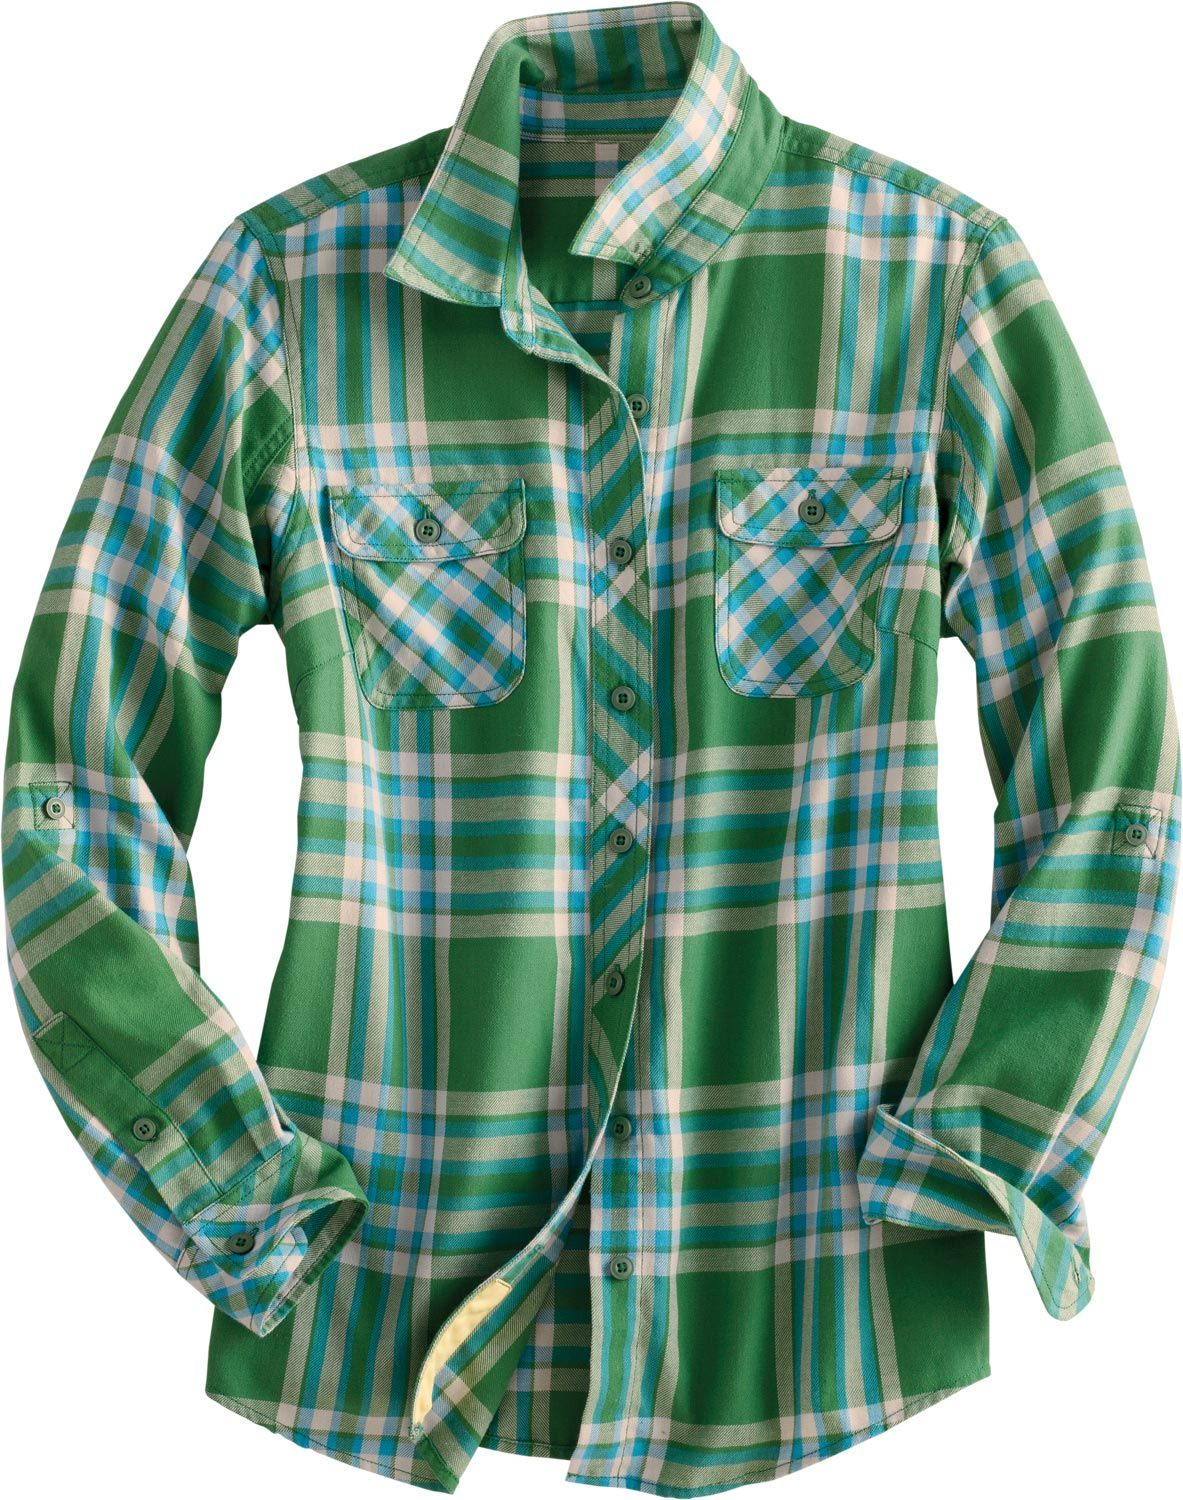 hand tailored women's flannel shirt | Fashion, for me? | Pinterest ...